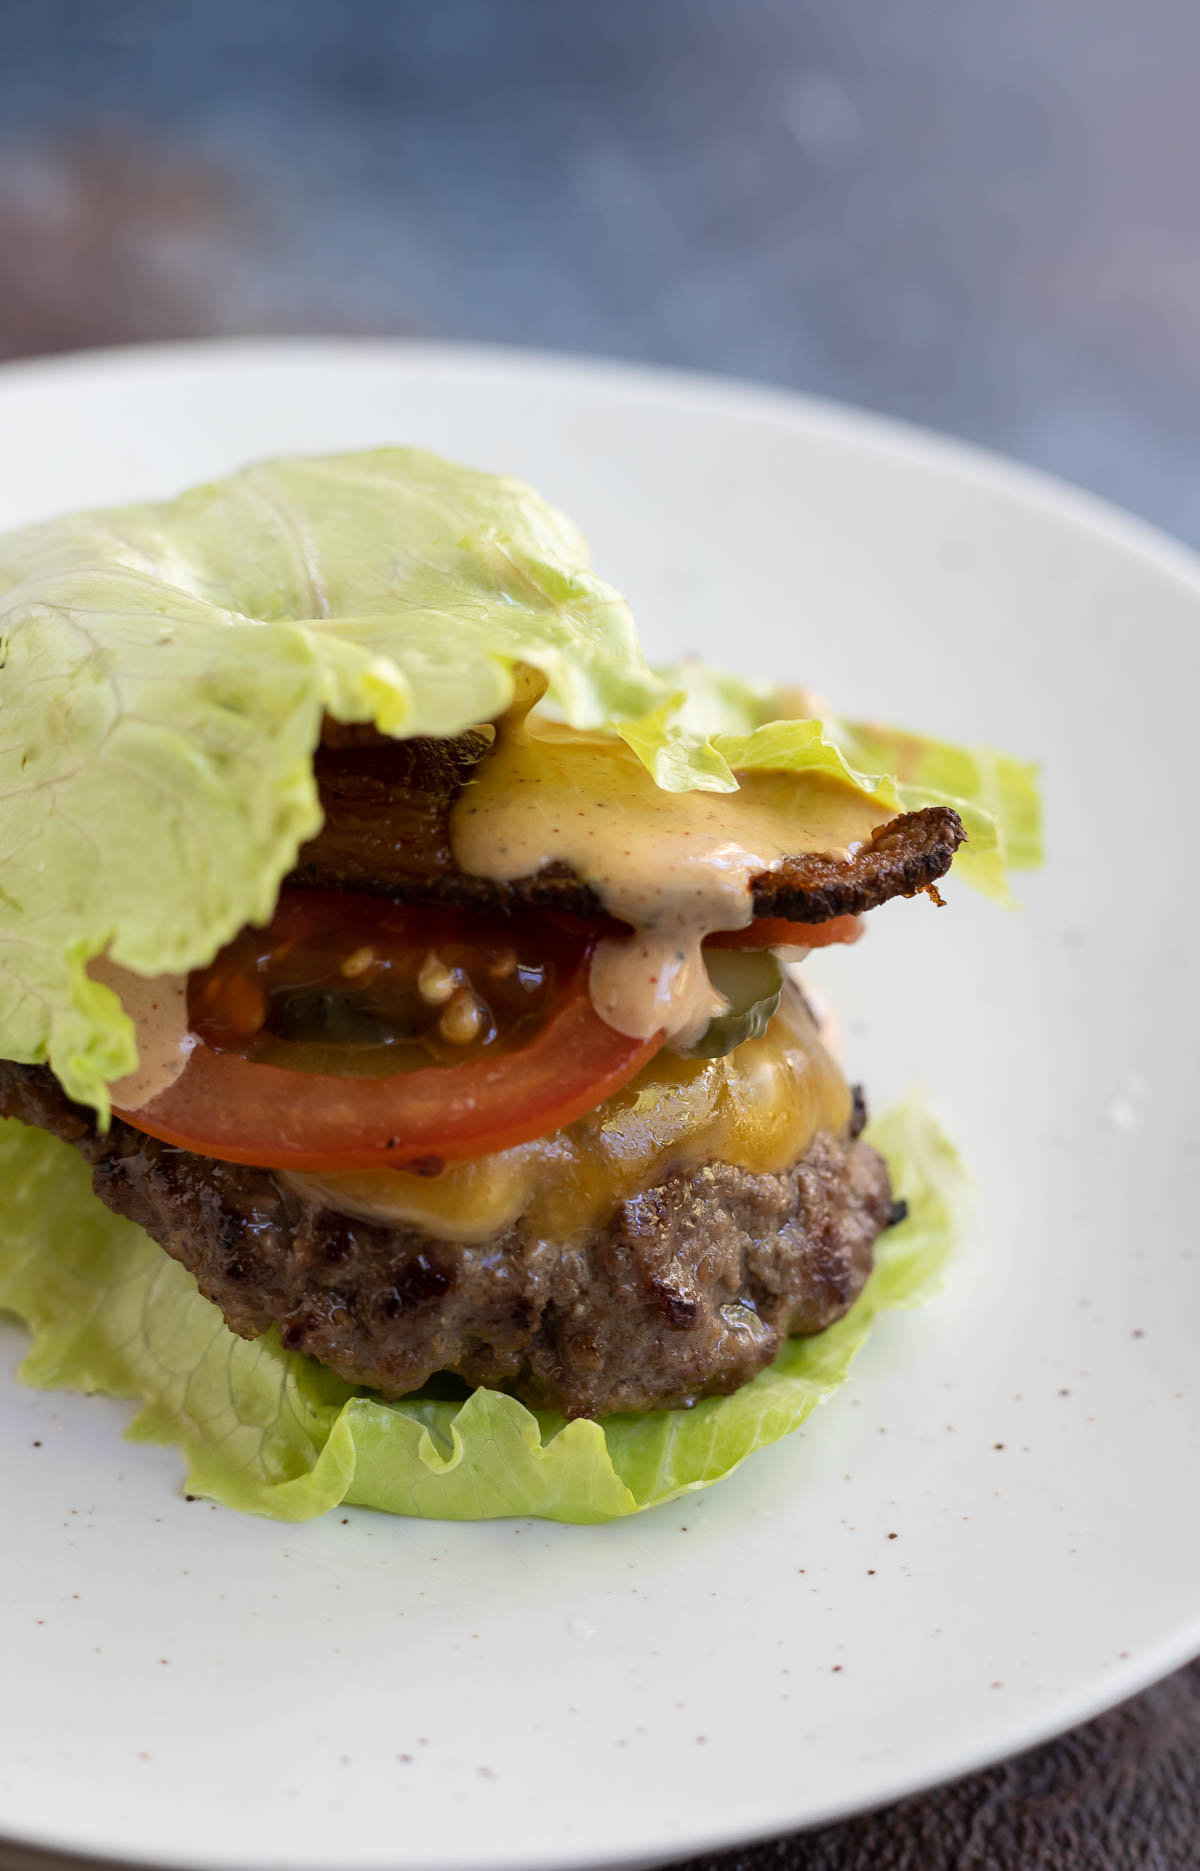 lettuce wrapped cheeseburger on white plate